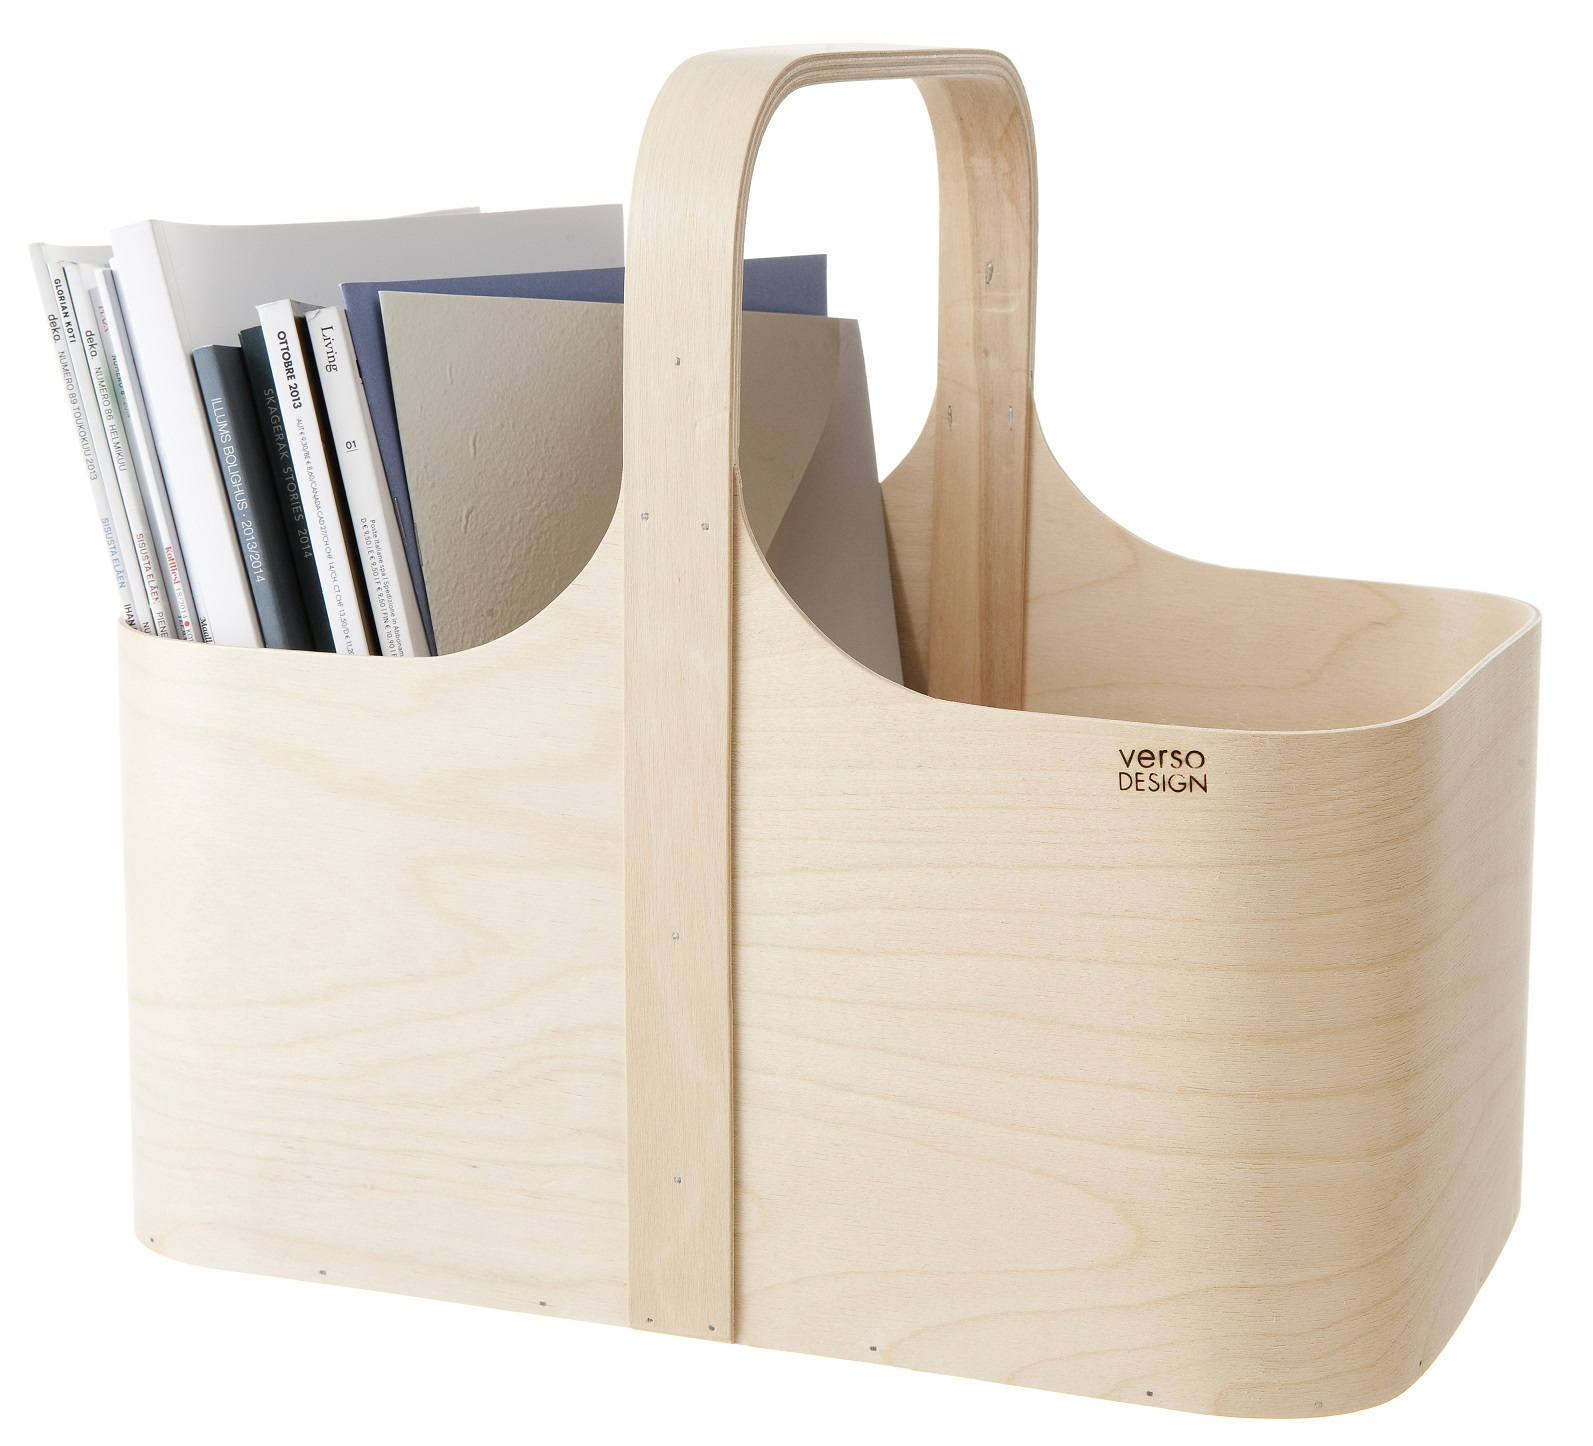 verso-design-koppa-magazine-rack-birch-1593x1446